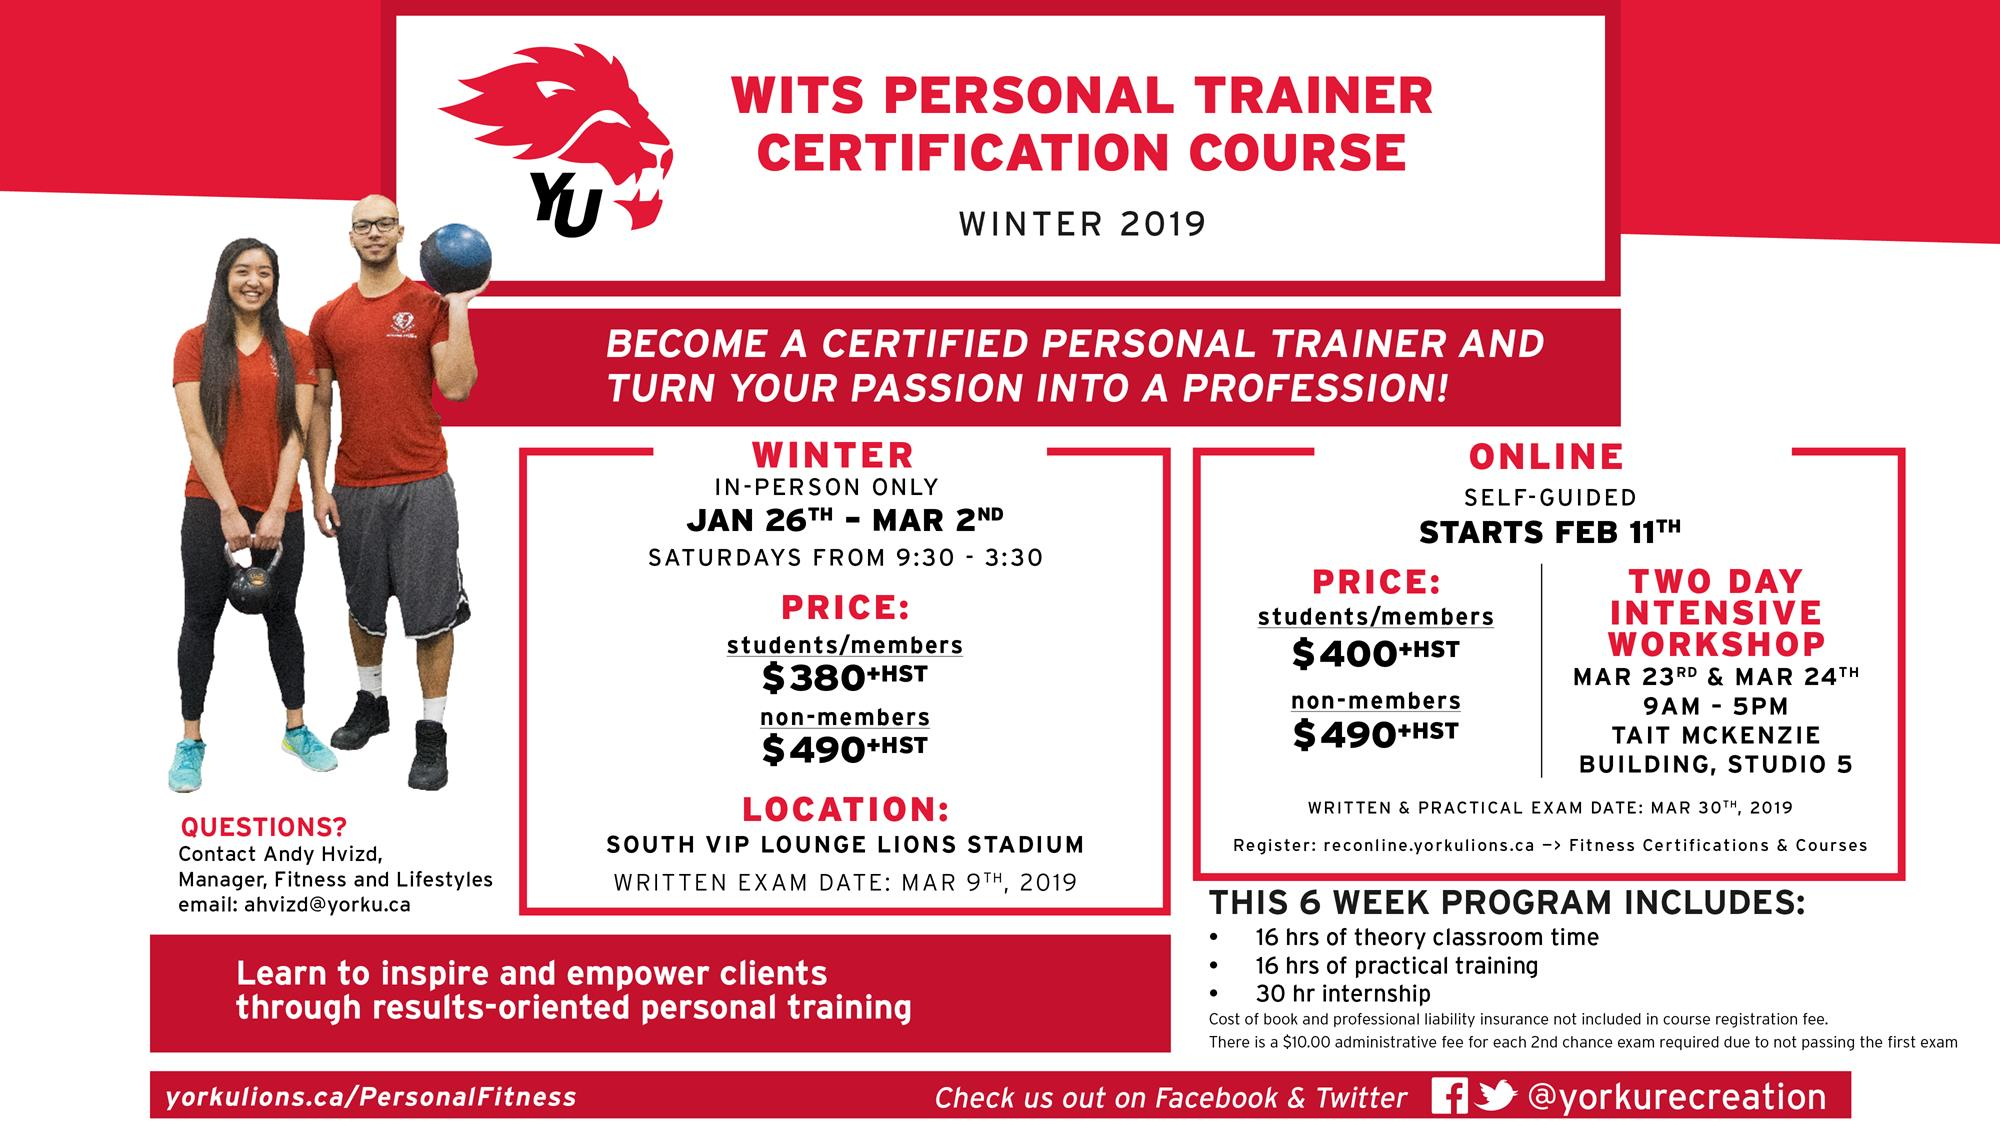 Sign Up For Wits Personal Trainer Certification Course York